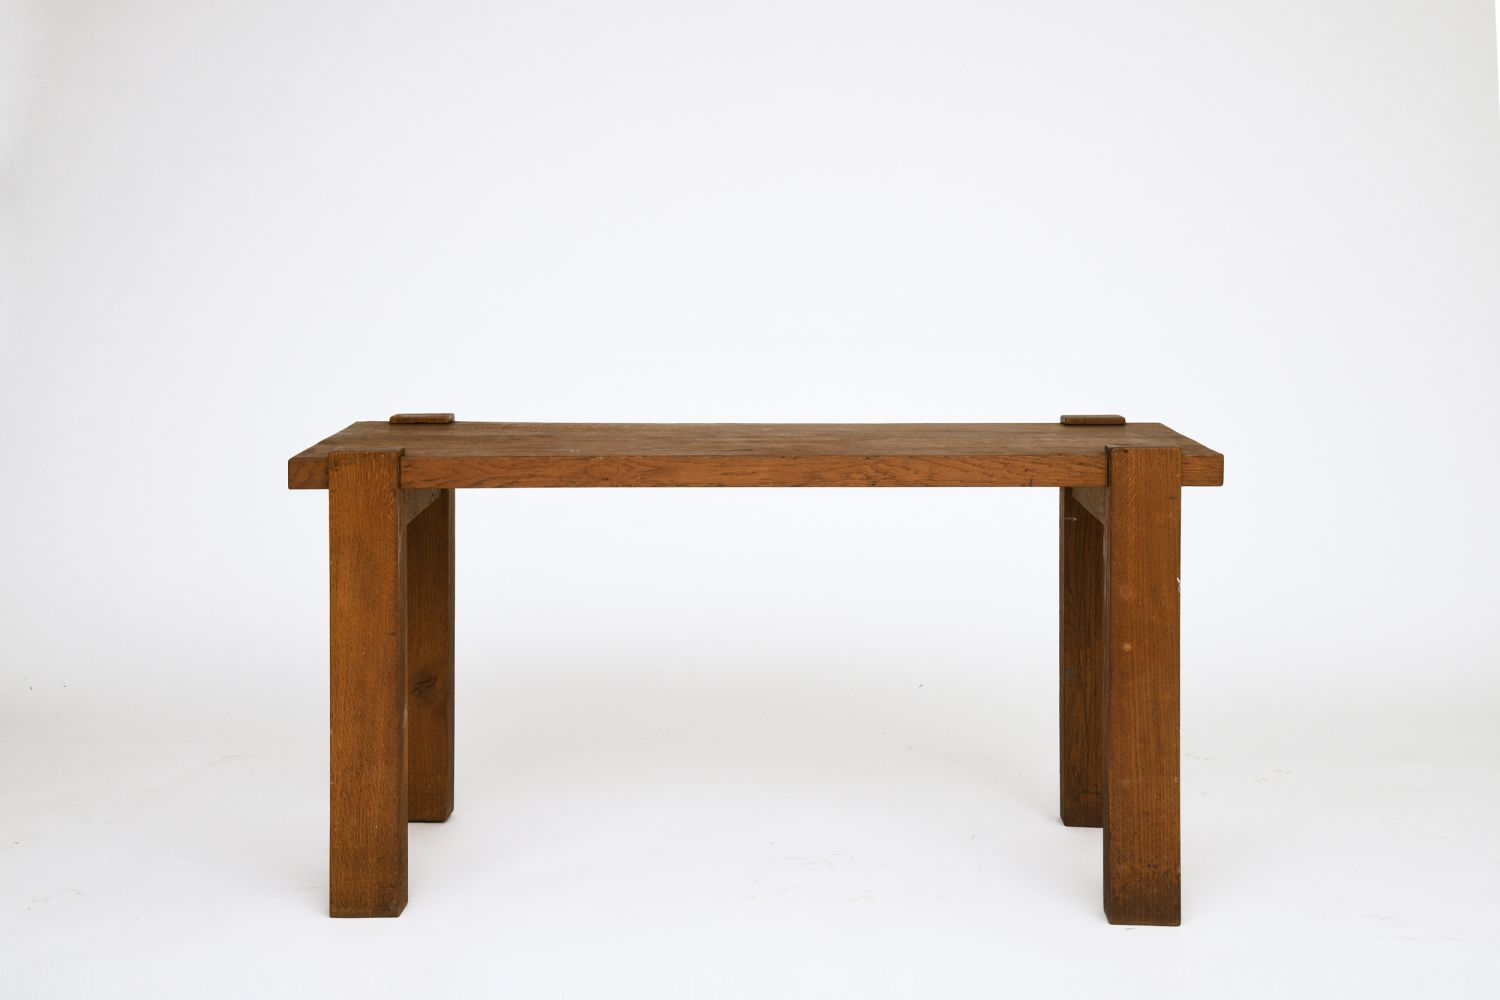 Henry Jacques Le Même's Table/Console, full straight view